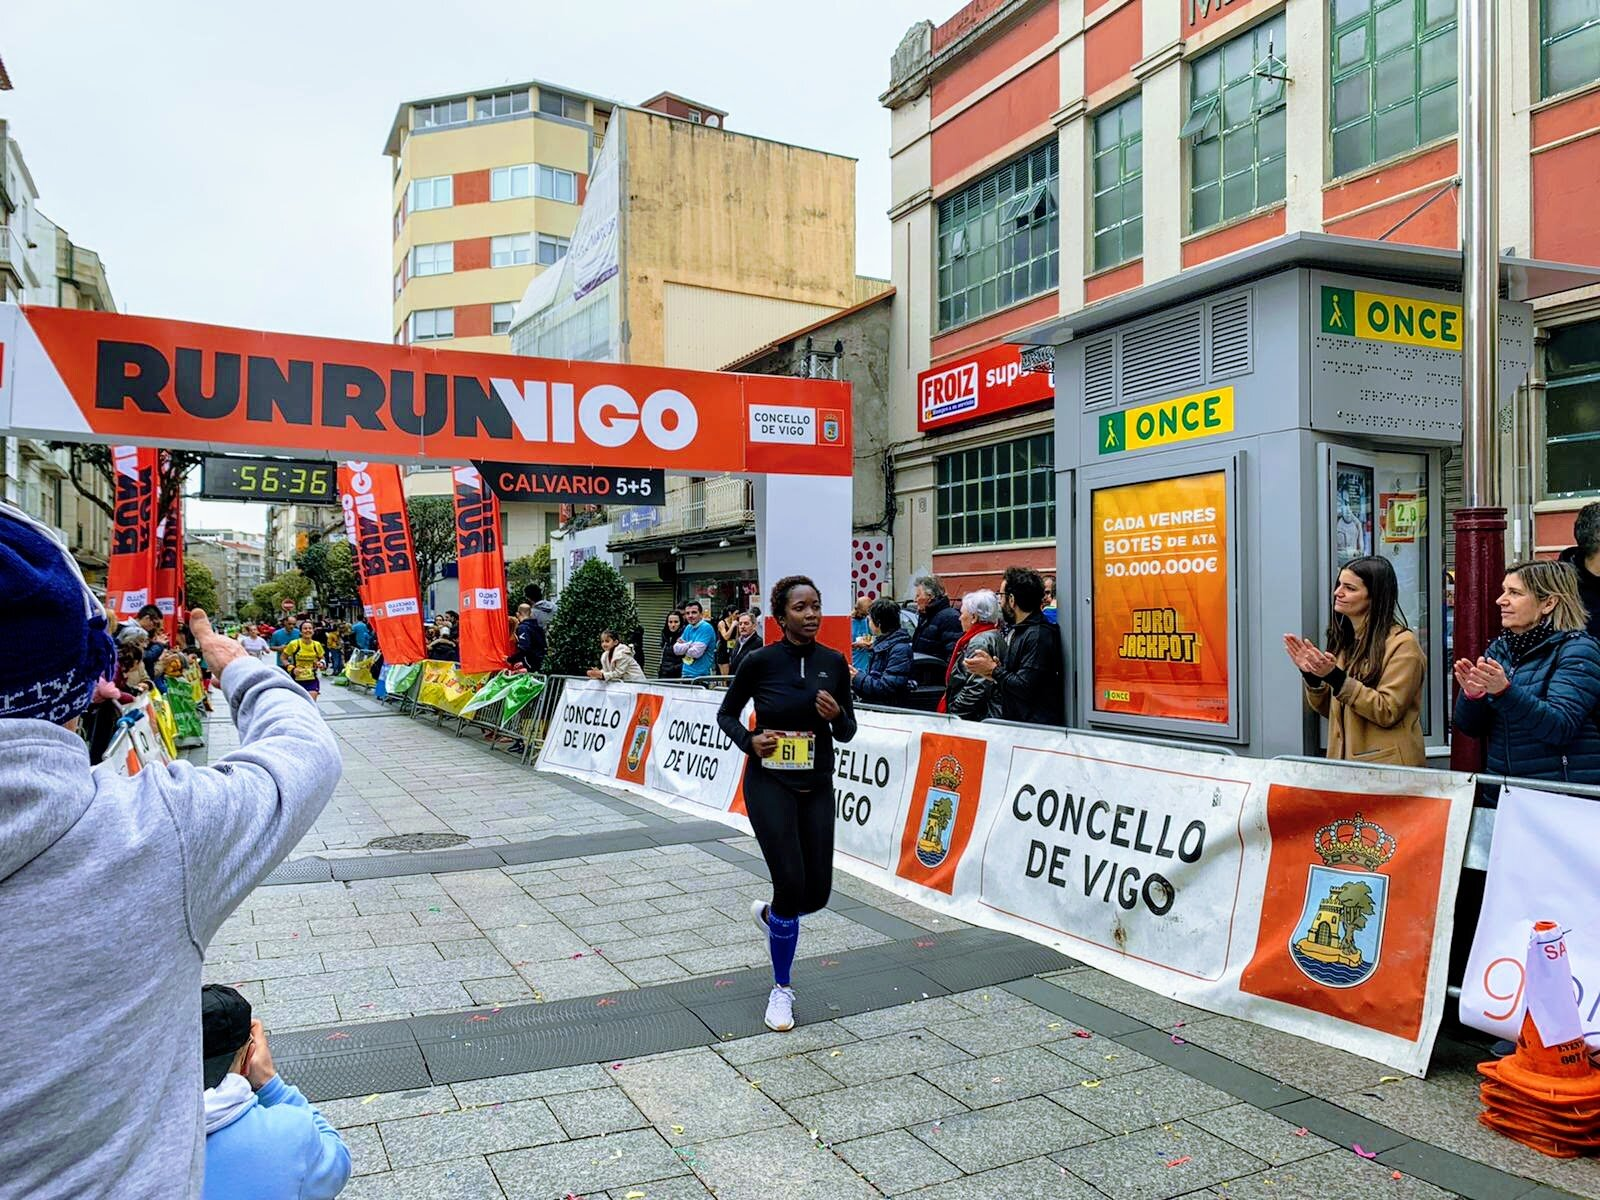 Calvario 5+5 - RunRunVigo race in February